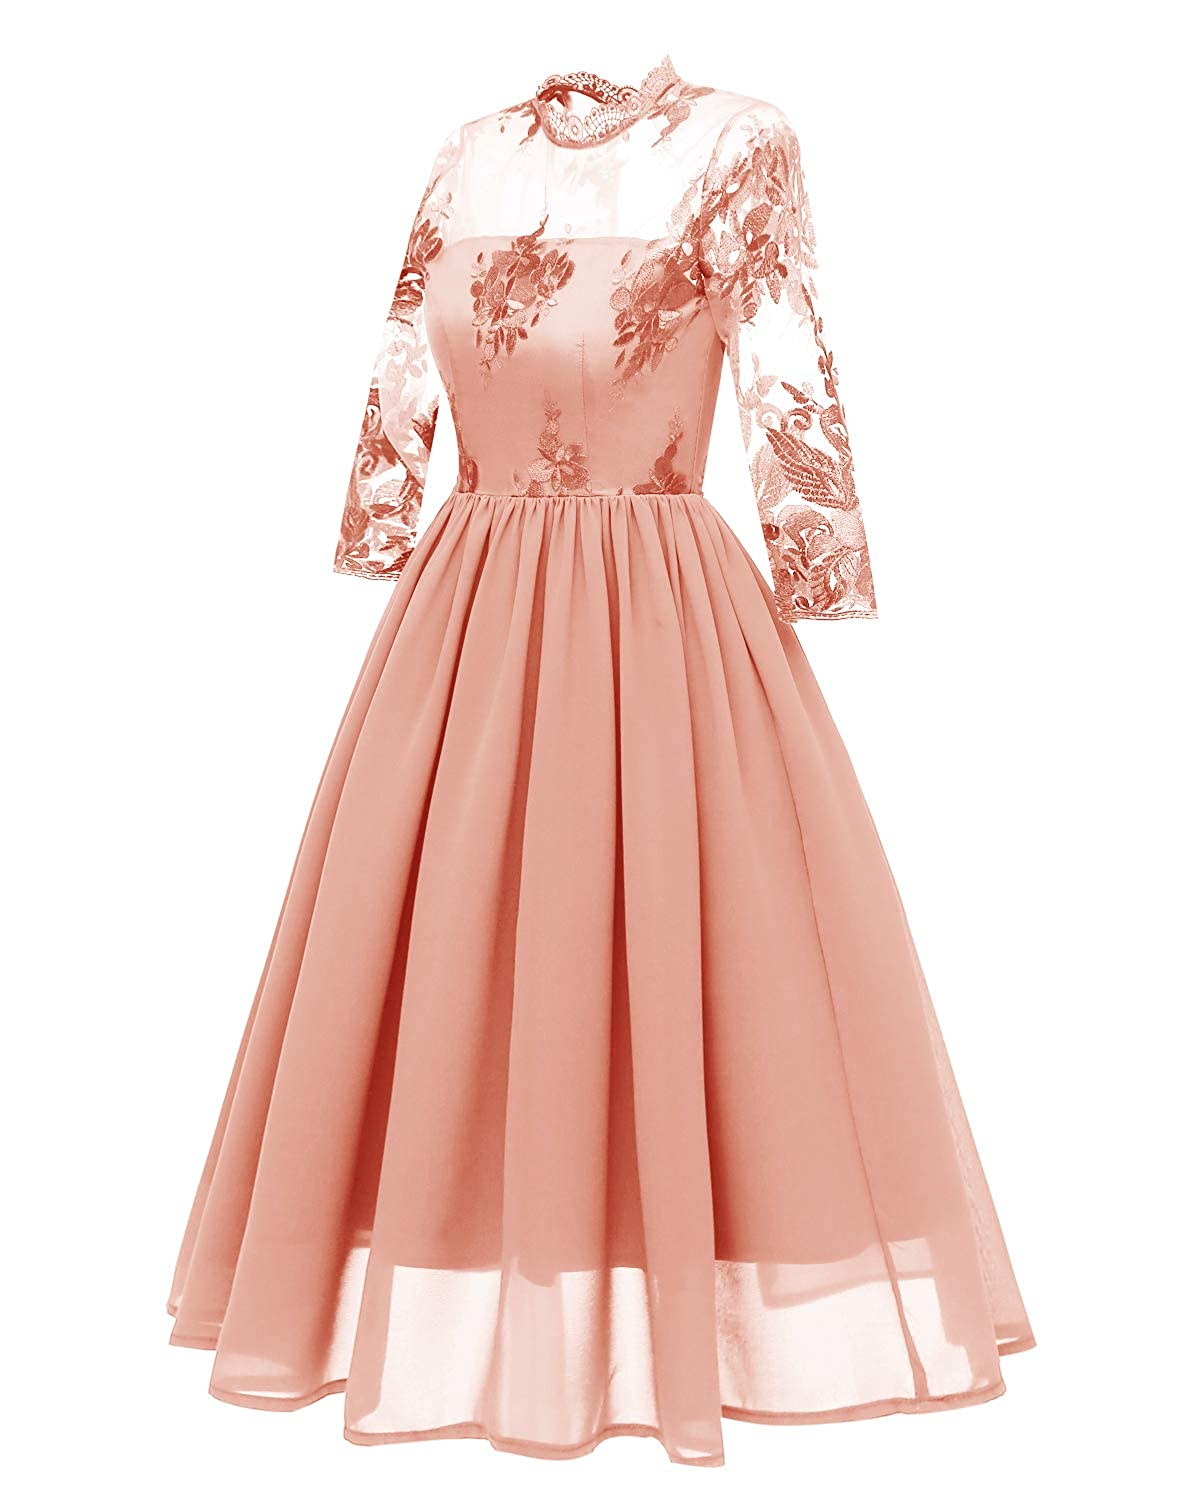 72432f4ef9 Bright Deer Women Premium Embroidered Floral High Neck Sleeved Midi Prom  Dress: Amazon.co.uk: Clothing